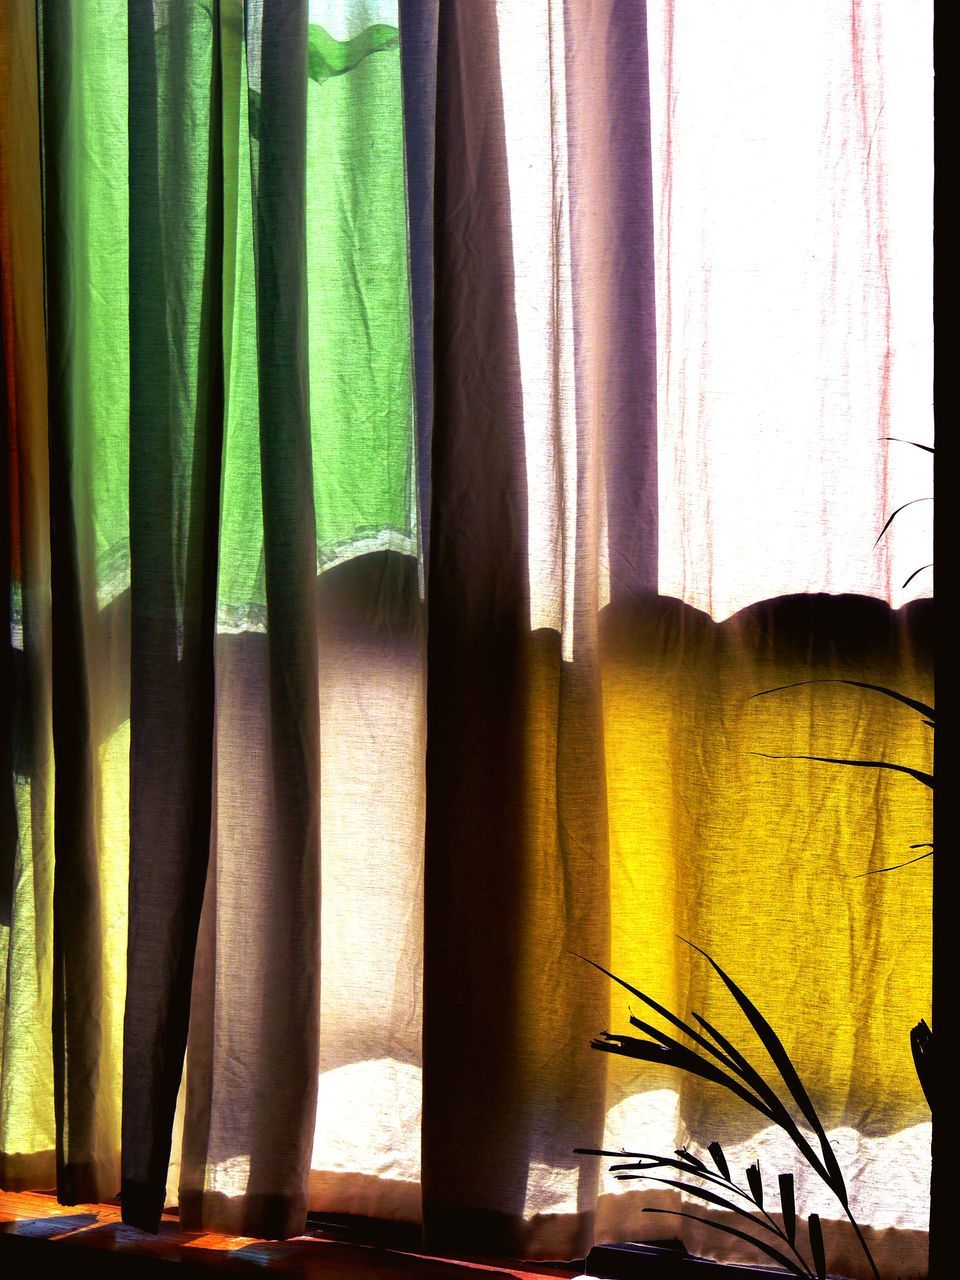 curtain, drapes, window, indoors, textile, fabric, no people, day, multi colored, close-up